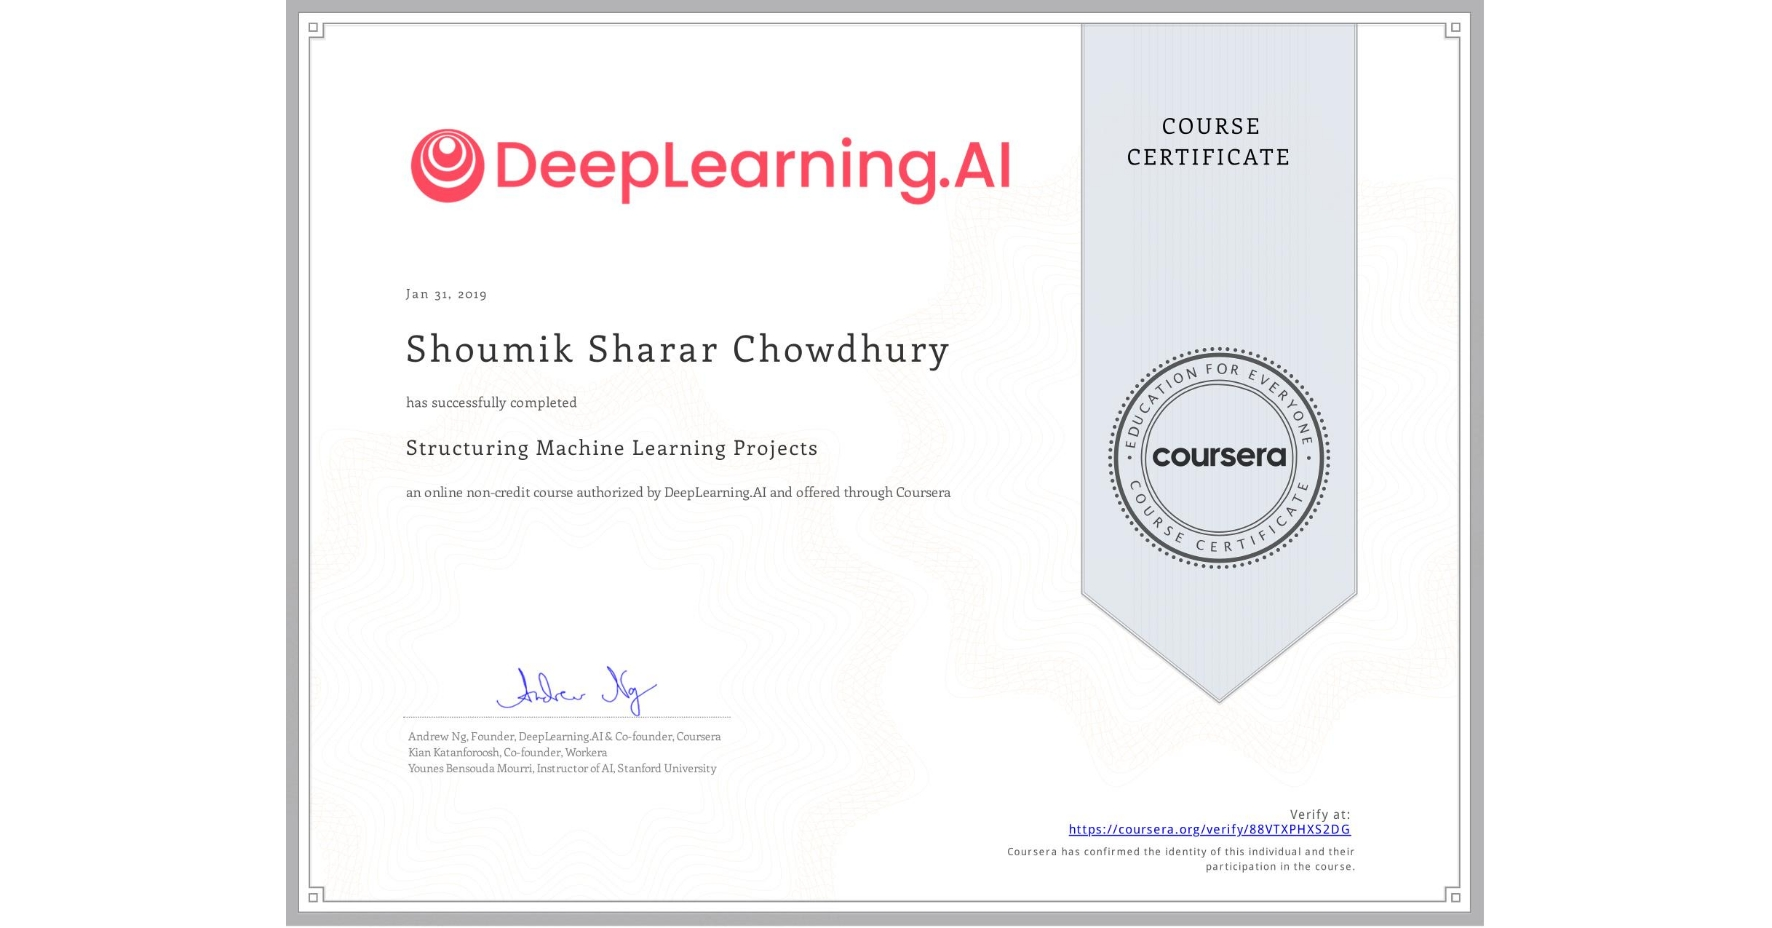 View certificate for Shoumik Sharar Chowdhury, Structuring Machine Learning Projects, an online non-credit course authorized by DeepLearning.AI and offered through Coursera